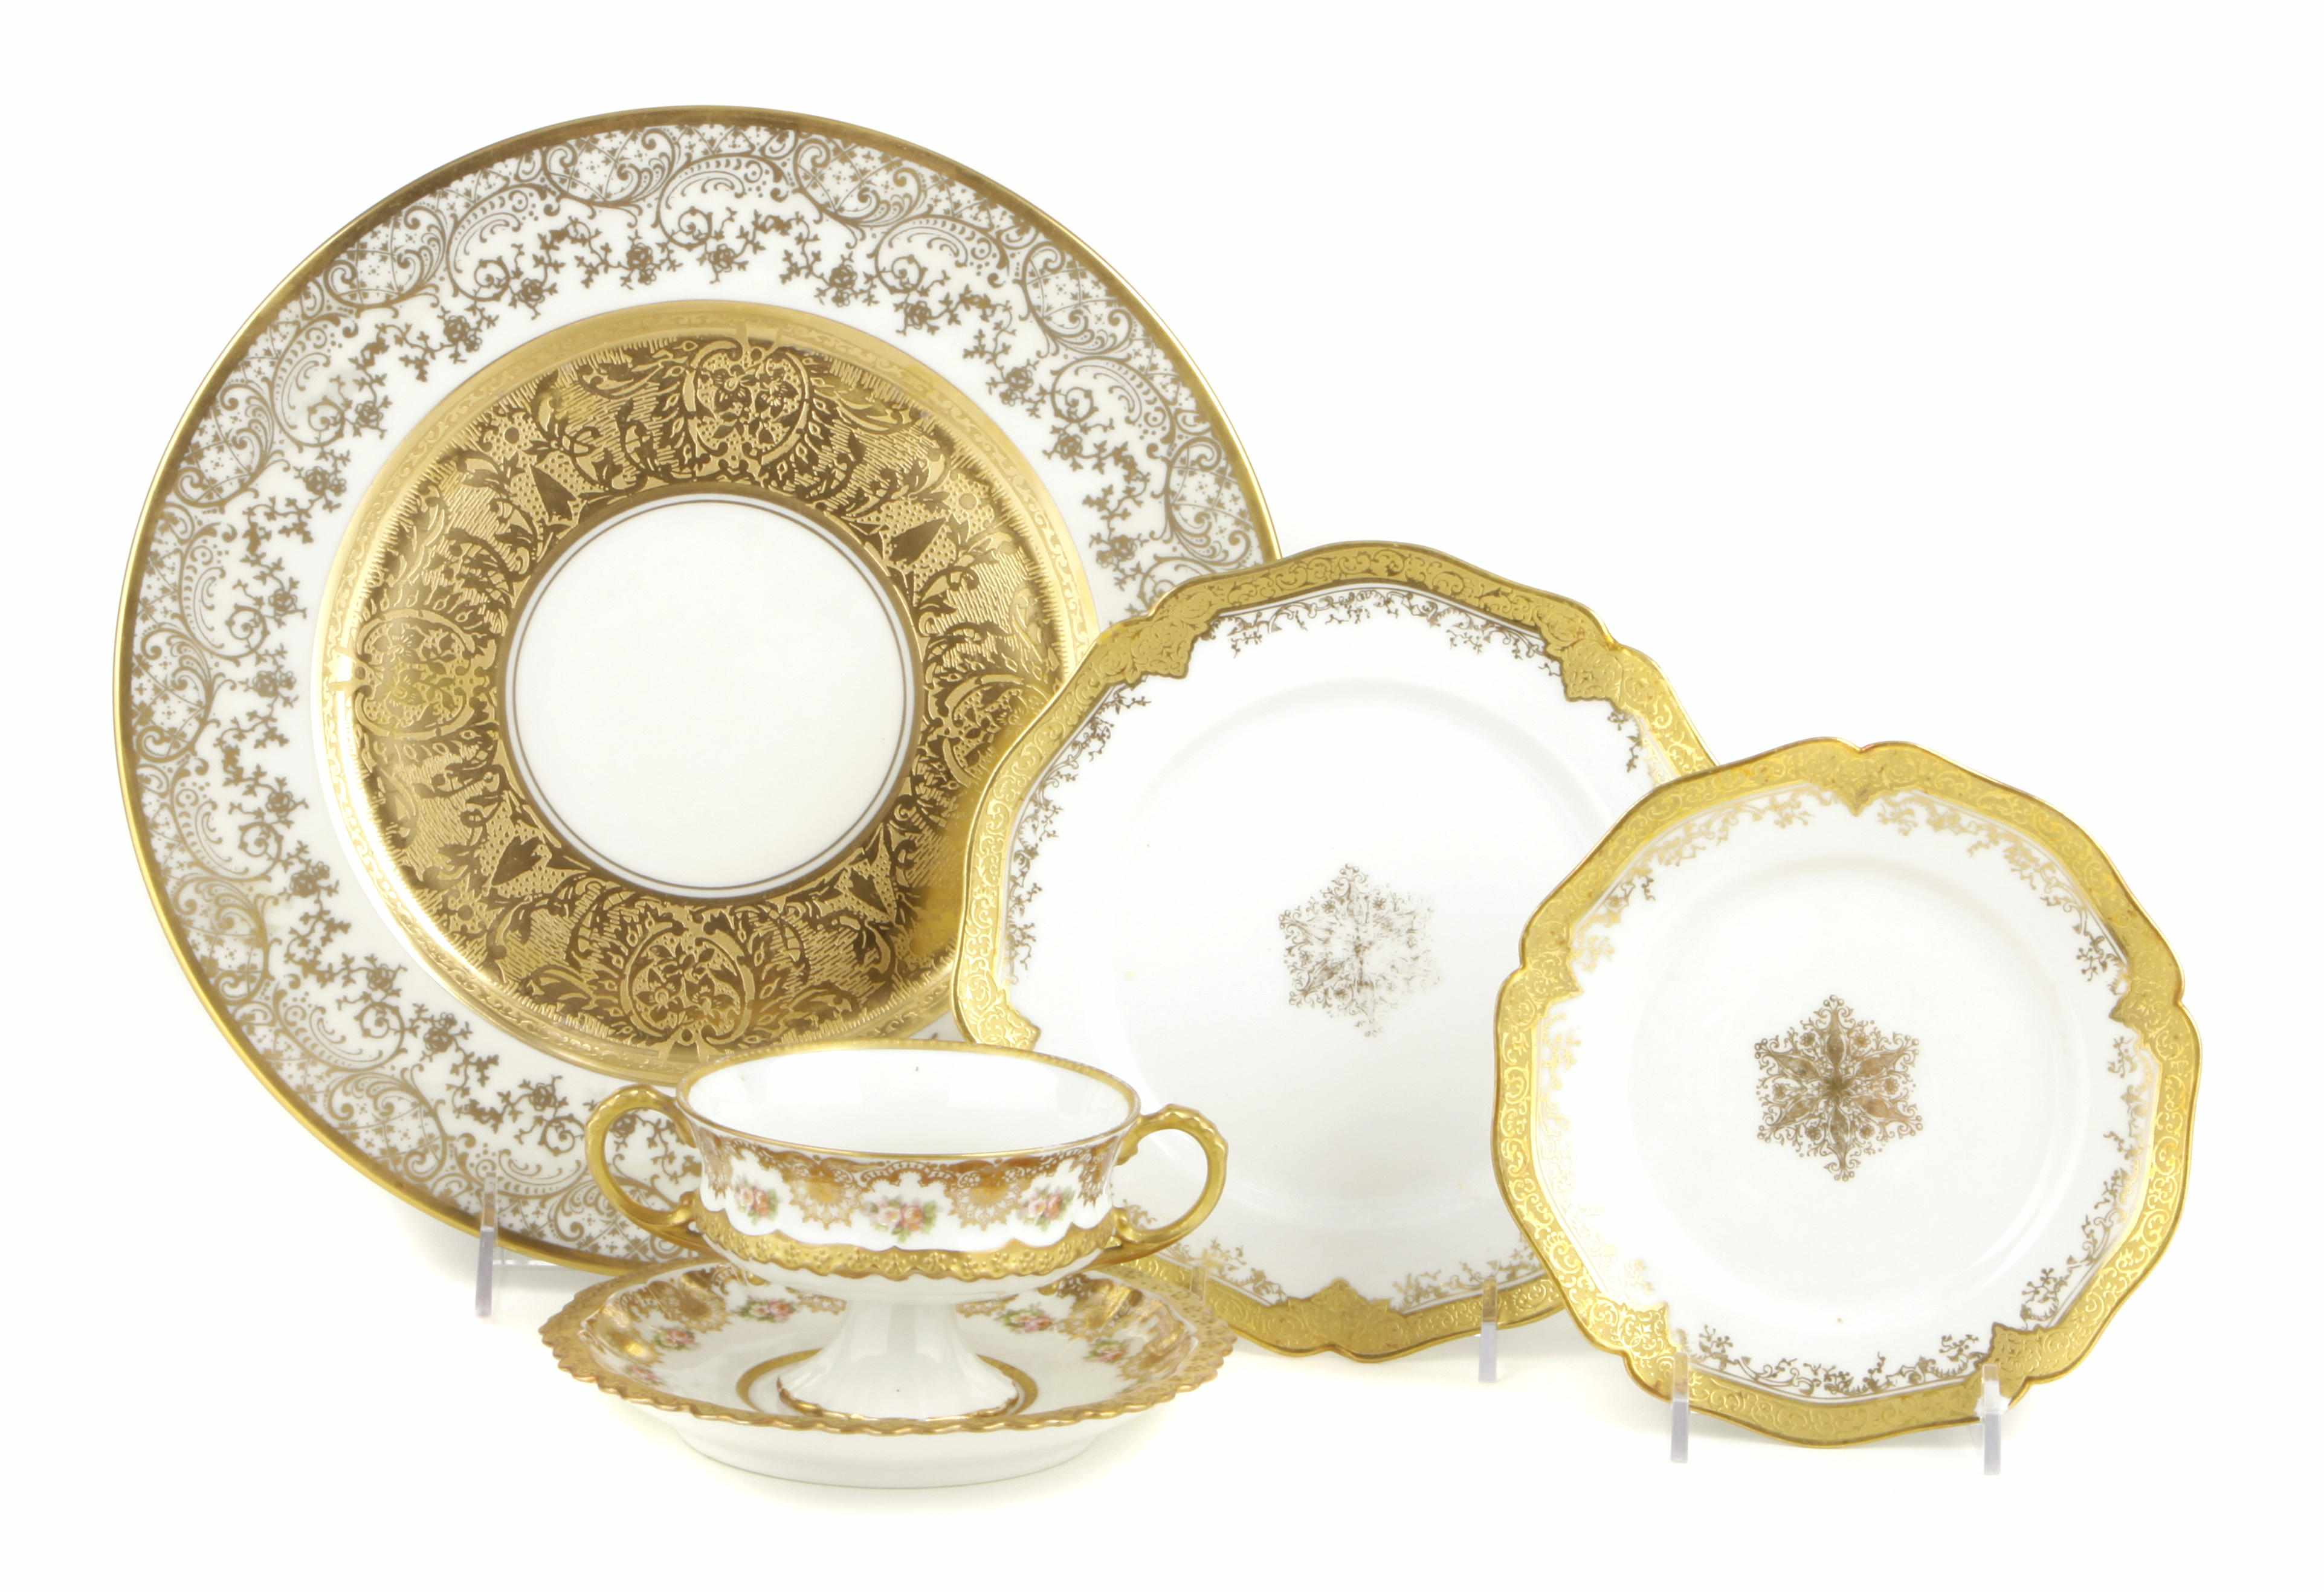 A Limoges porcelain part dinner service With